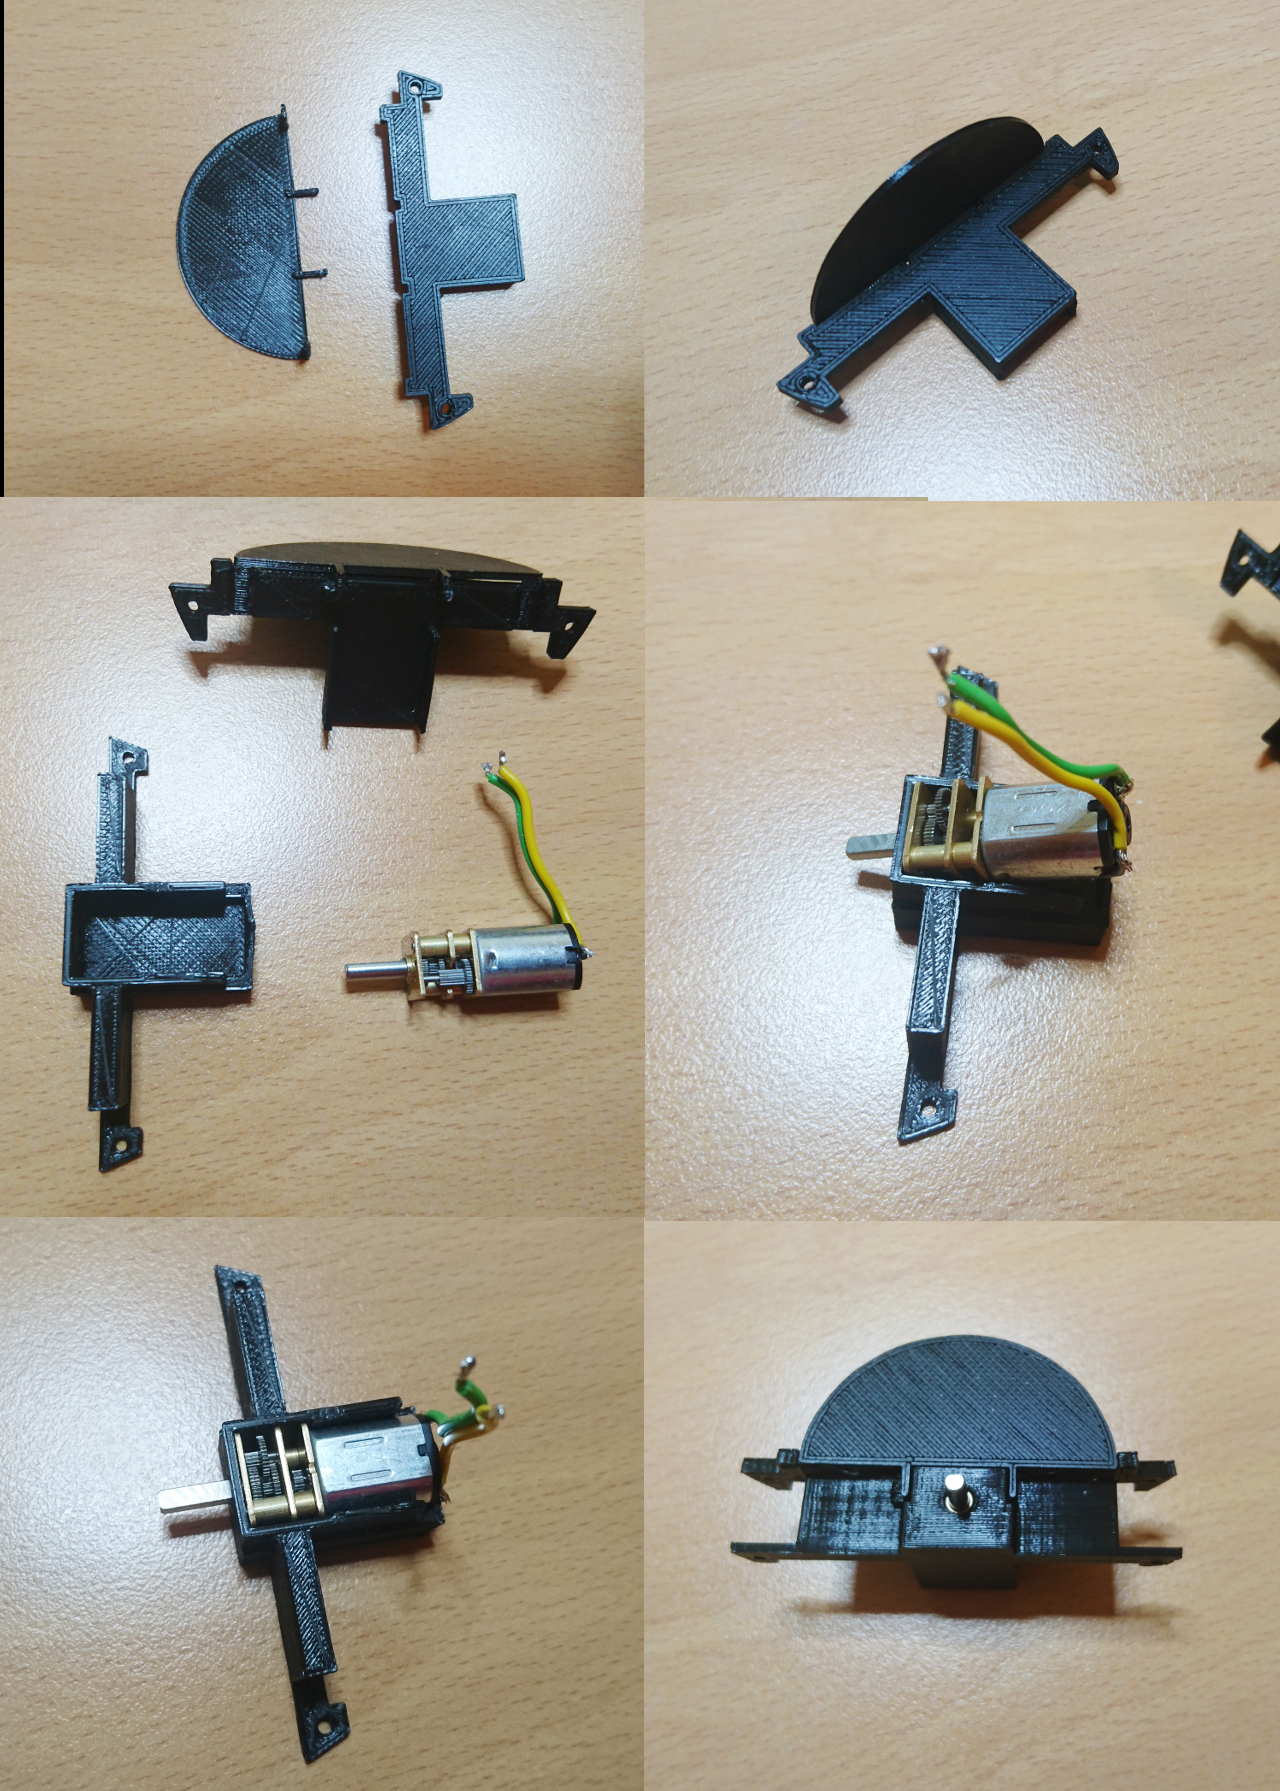 Assembling Wheel Part 1